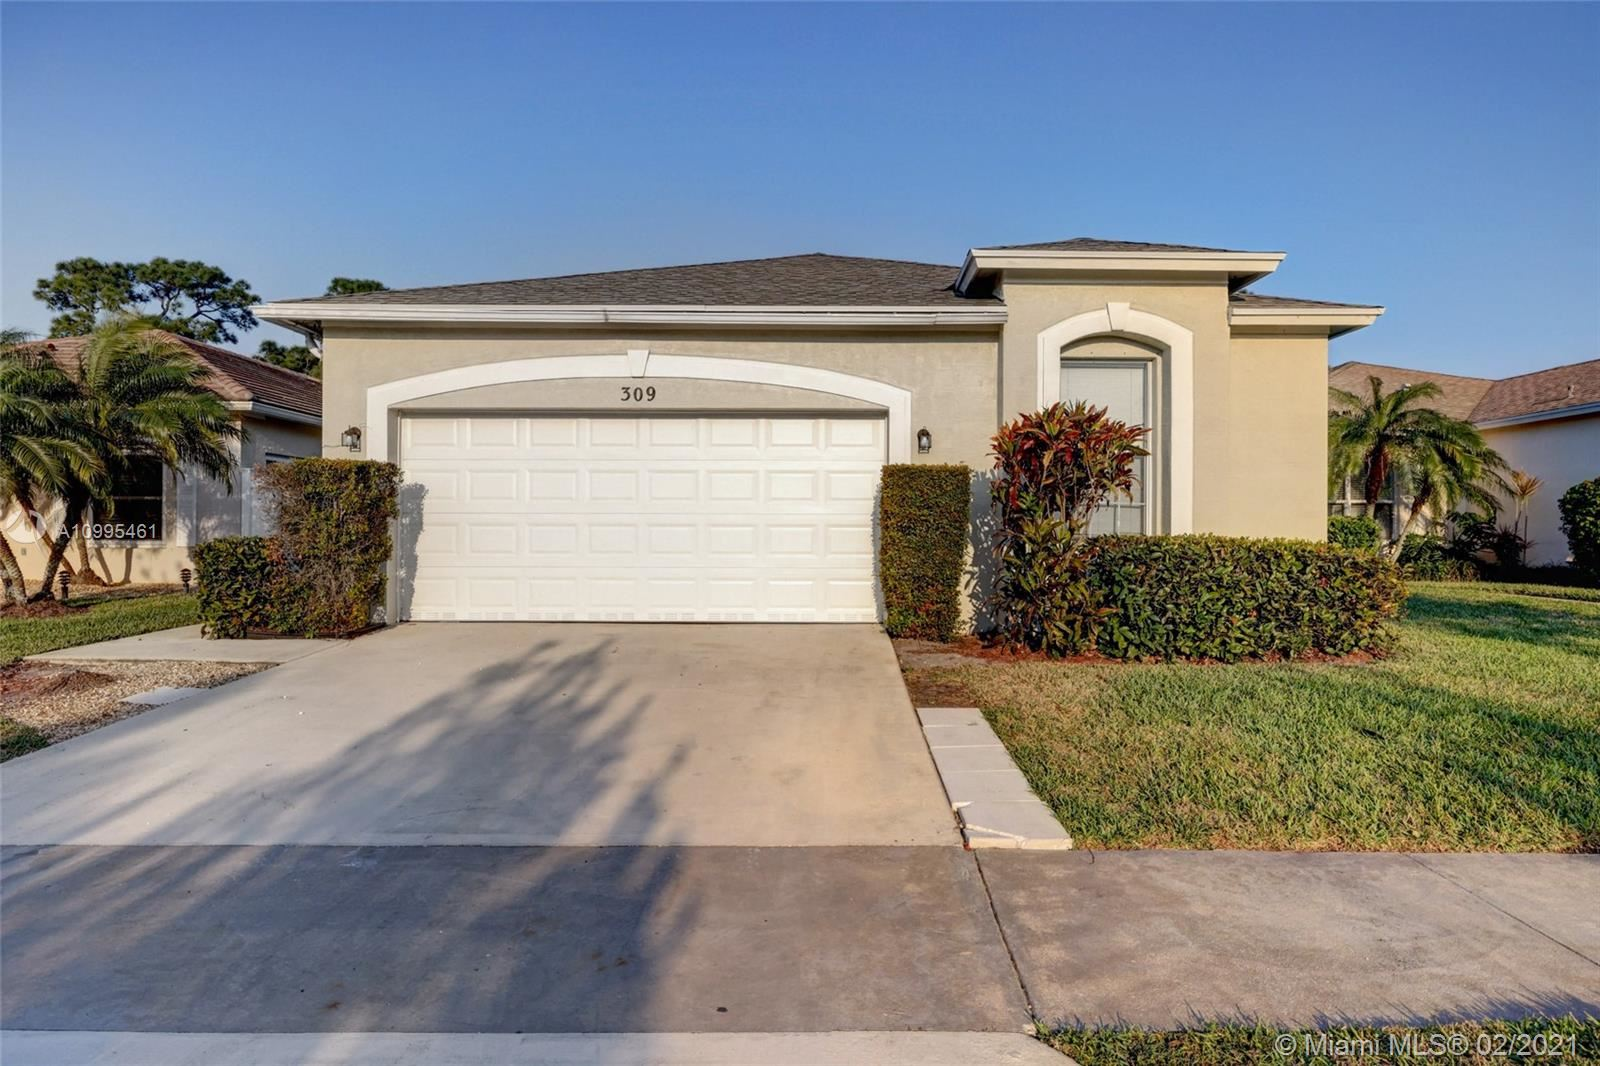 309 SW Tomoka Springs Dr, Port Saint Lucie, FL 34986 - #: A10995461